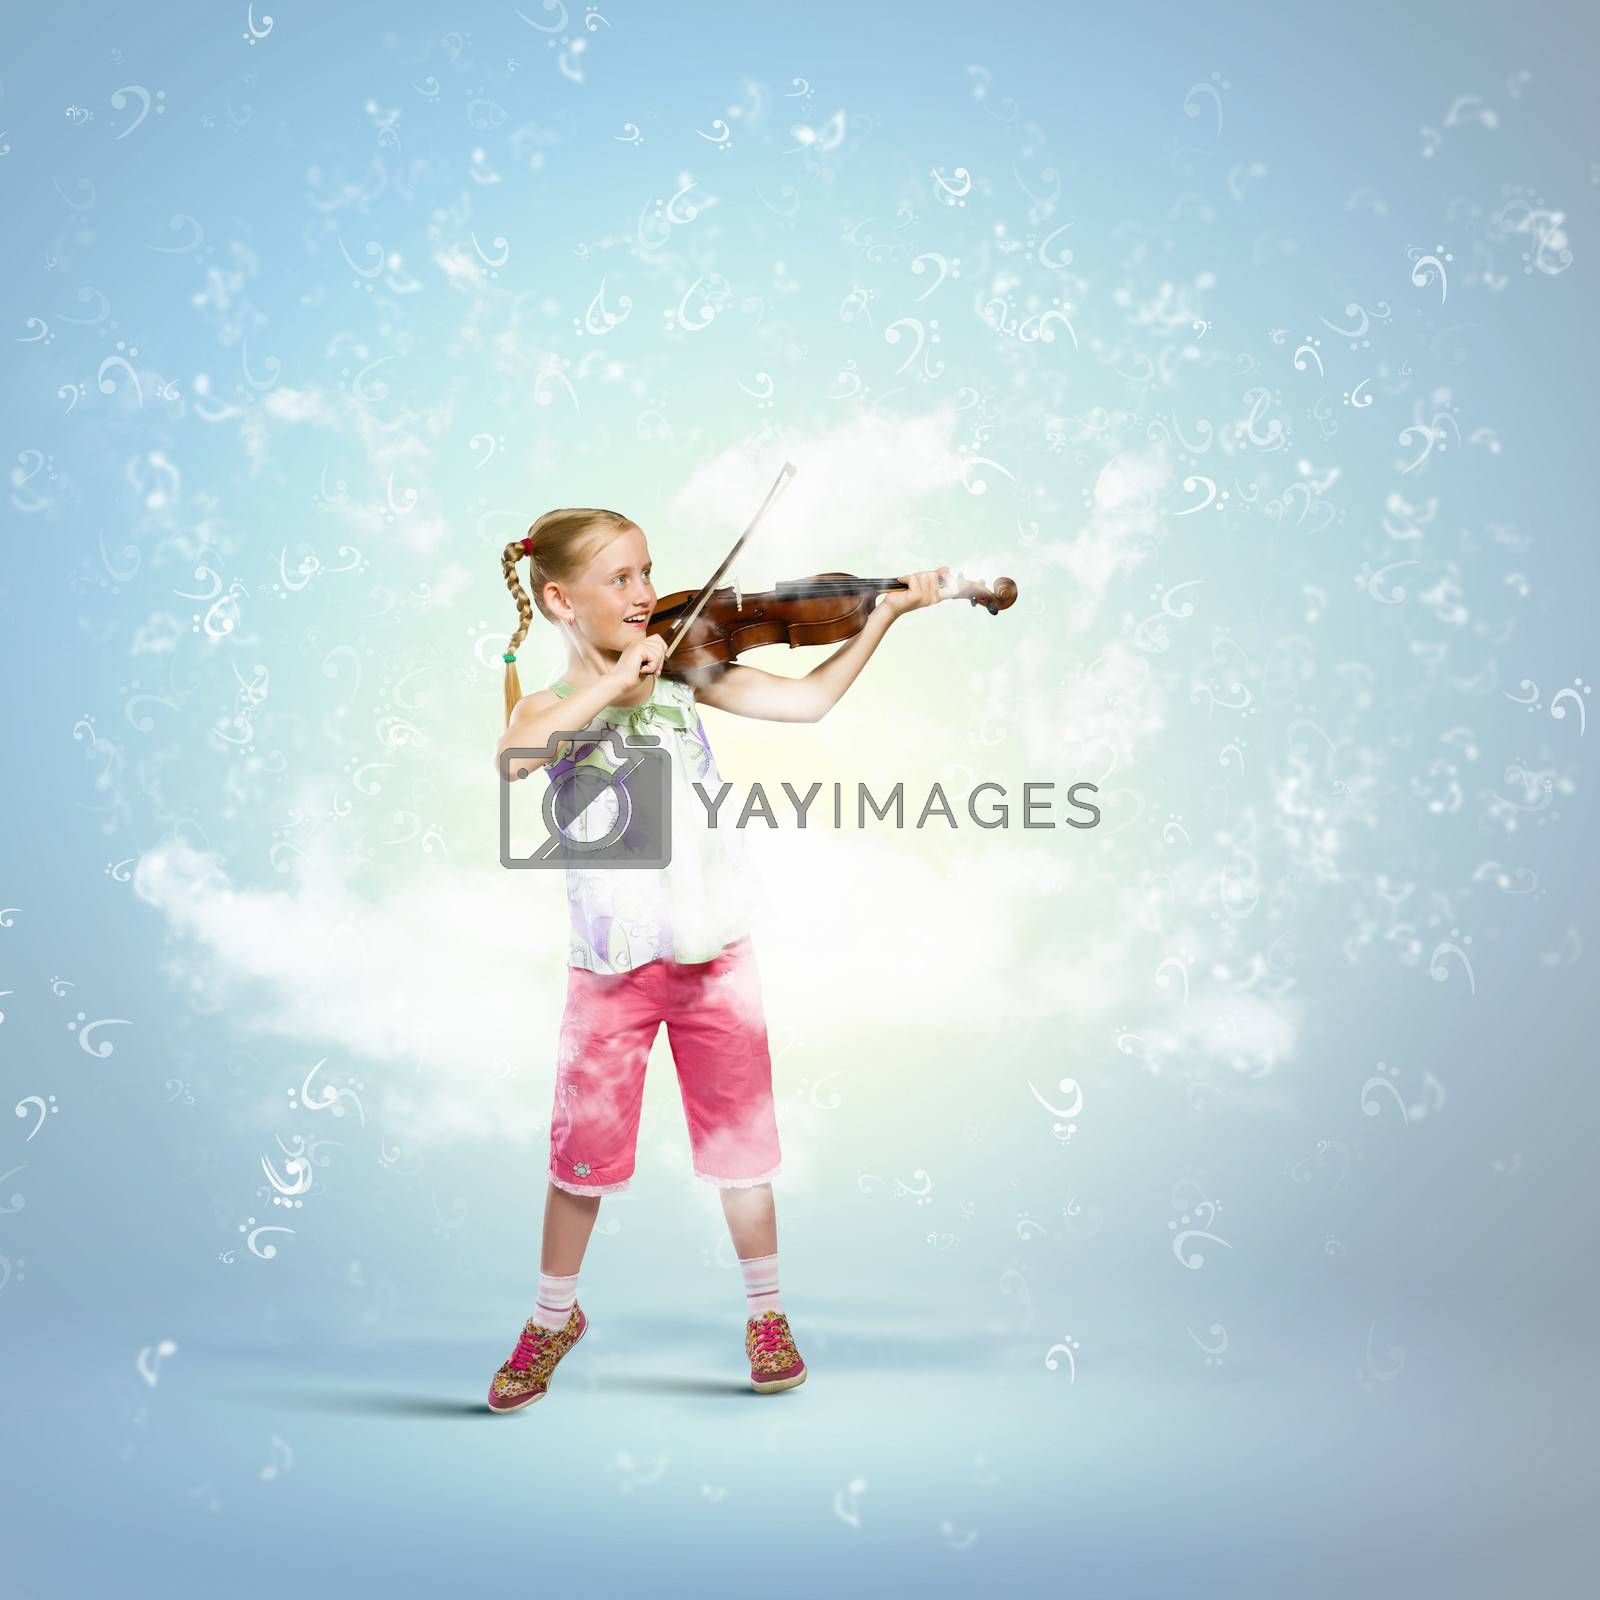 Royalty free image of Girl playing violin by sergey_nivens